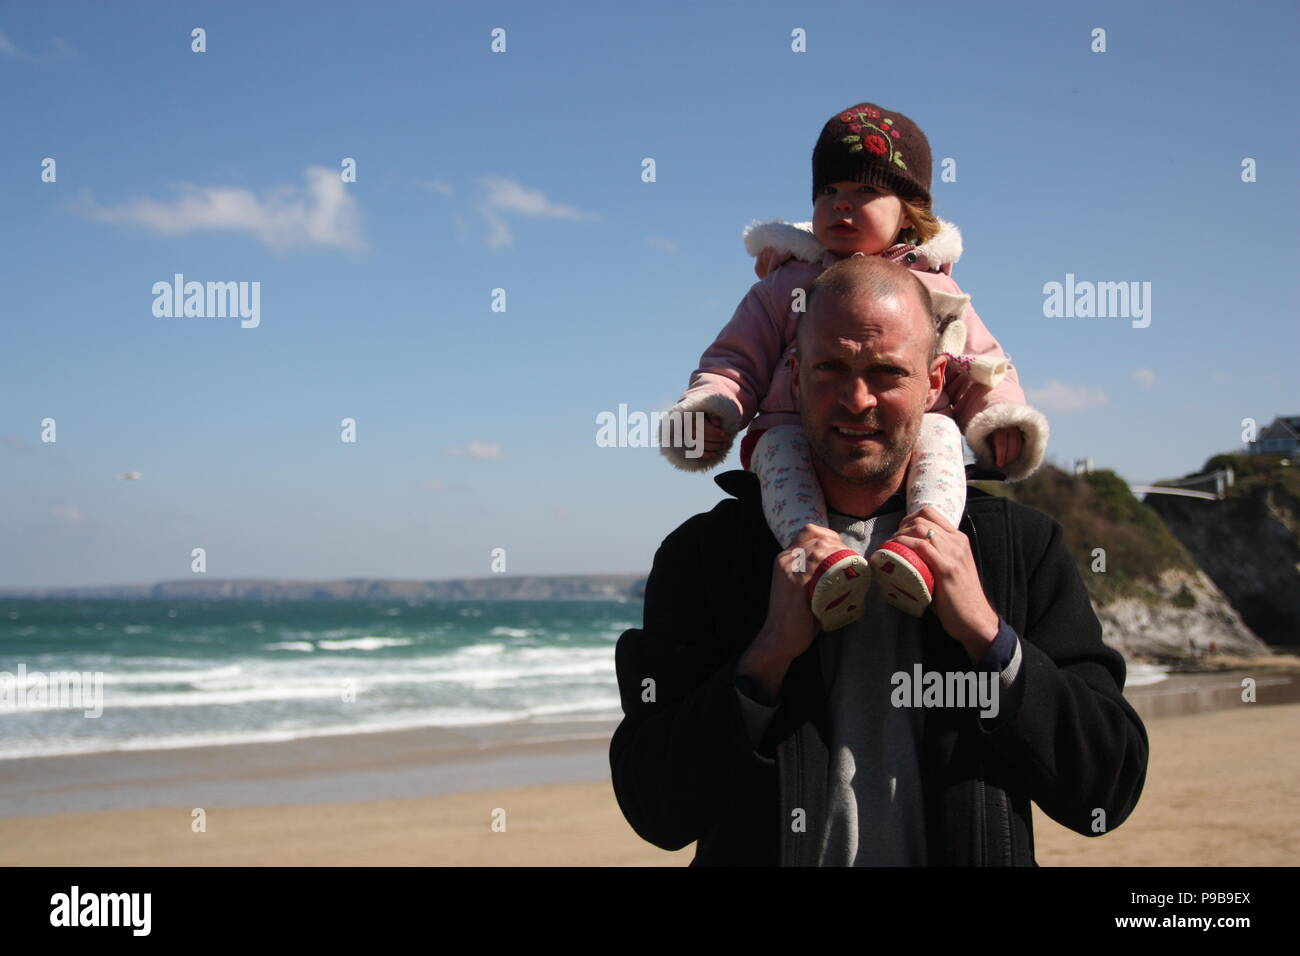 Man with young girl on his shoulder on a sandy beach at seaside Marazion Cornwall - Stock Image